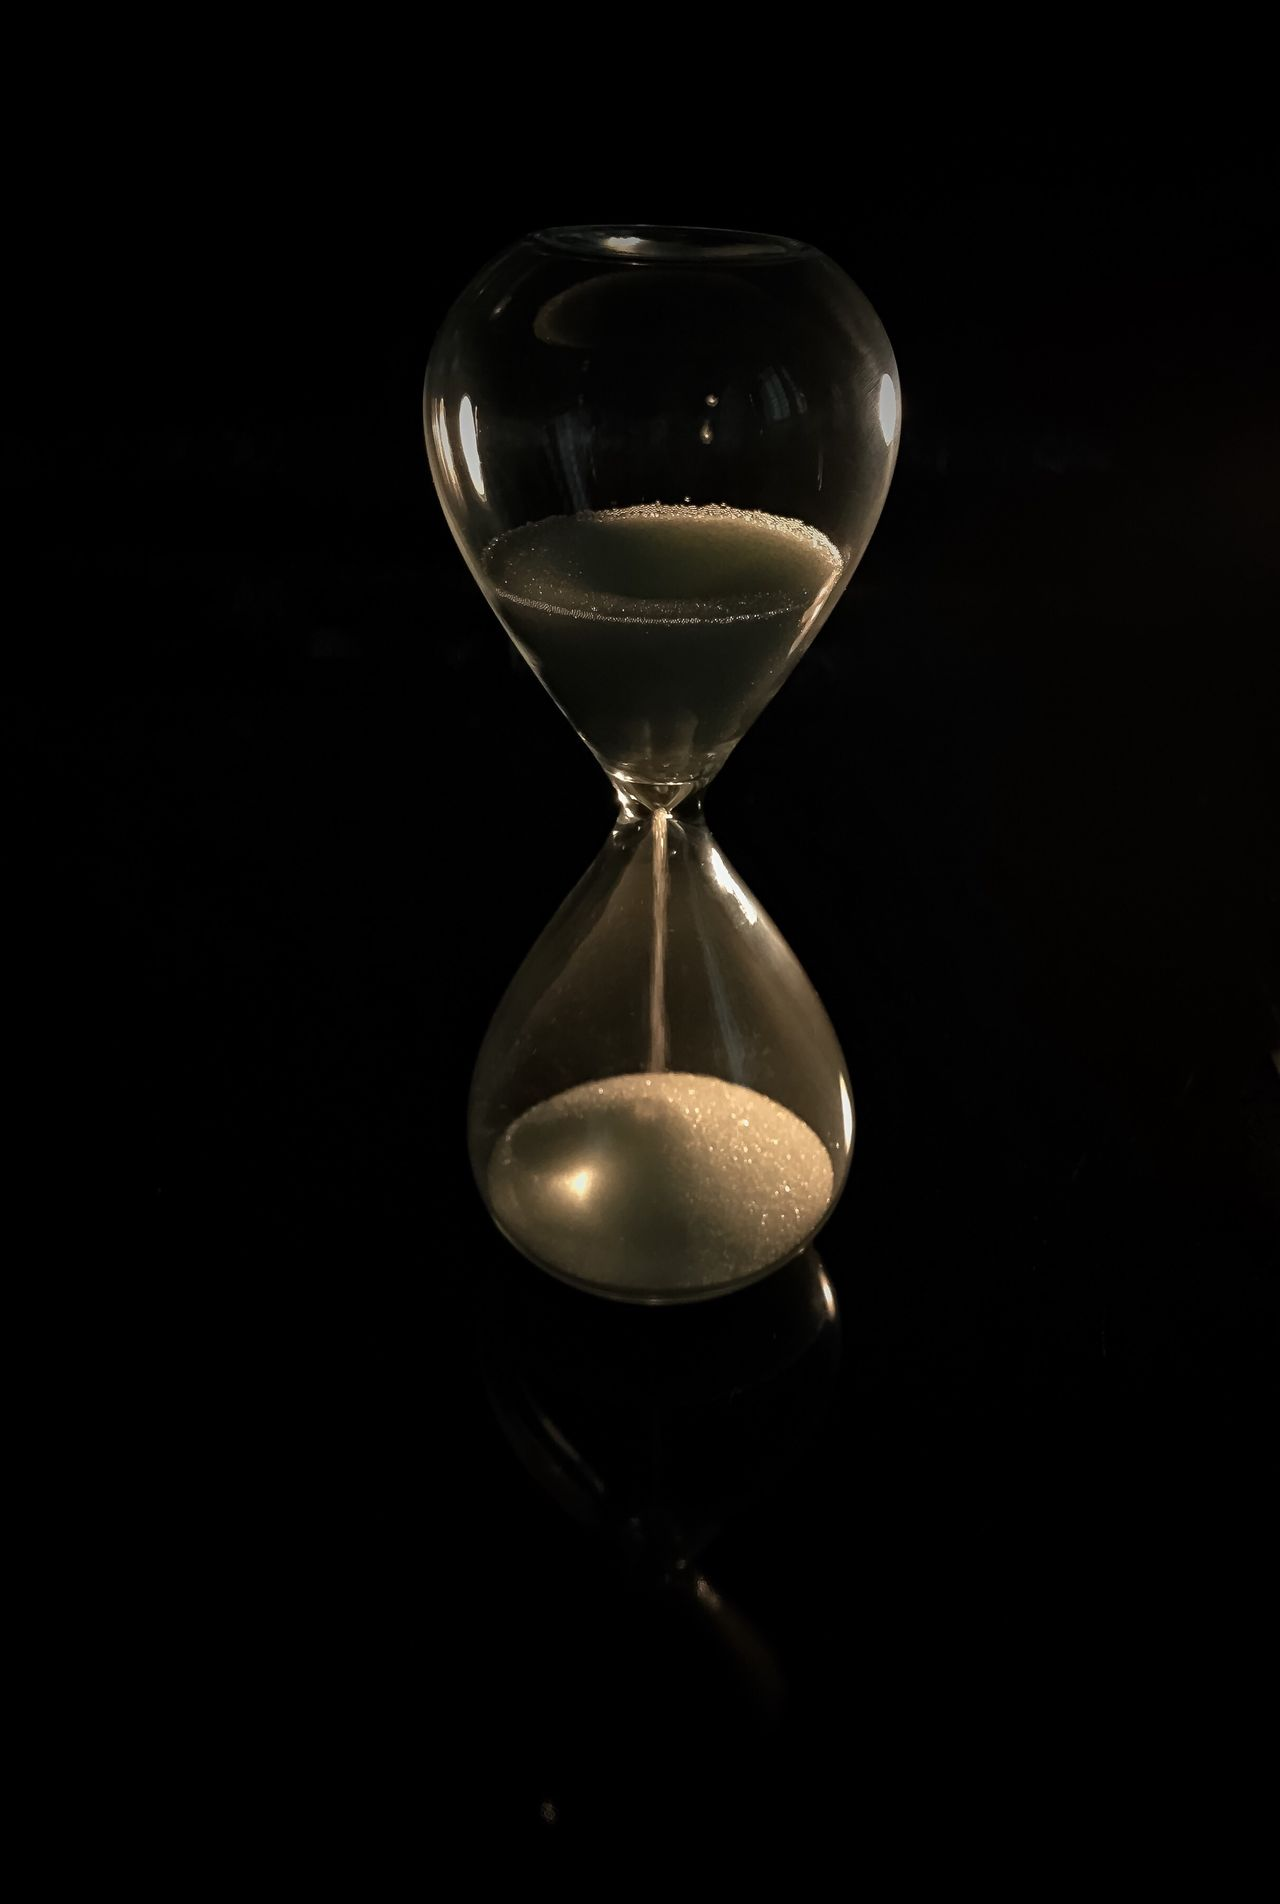 Hourglass Time Sand Deadline Black Background Single Object Urgency No People Timer Close-up Studio Shot Studio Studio Photography Sand Clock Reloj Reloj De Arena